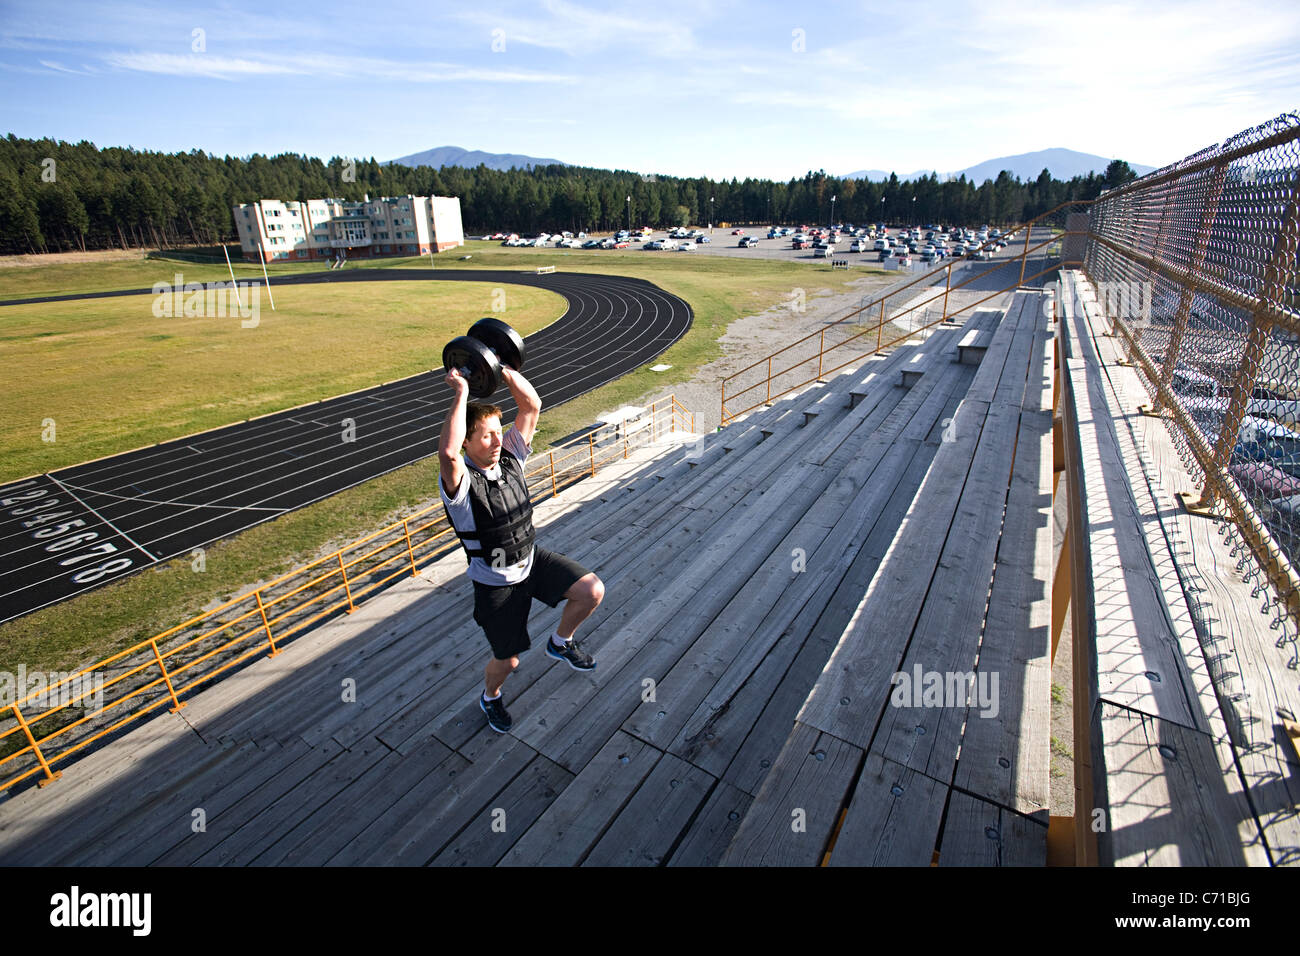 man in shorts running stairs with weighted vest and weight held above head - Stock Image